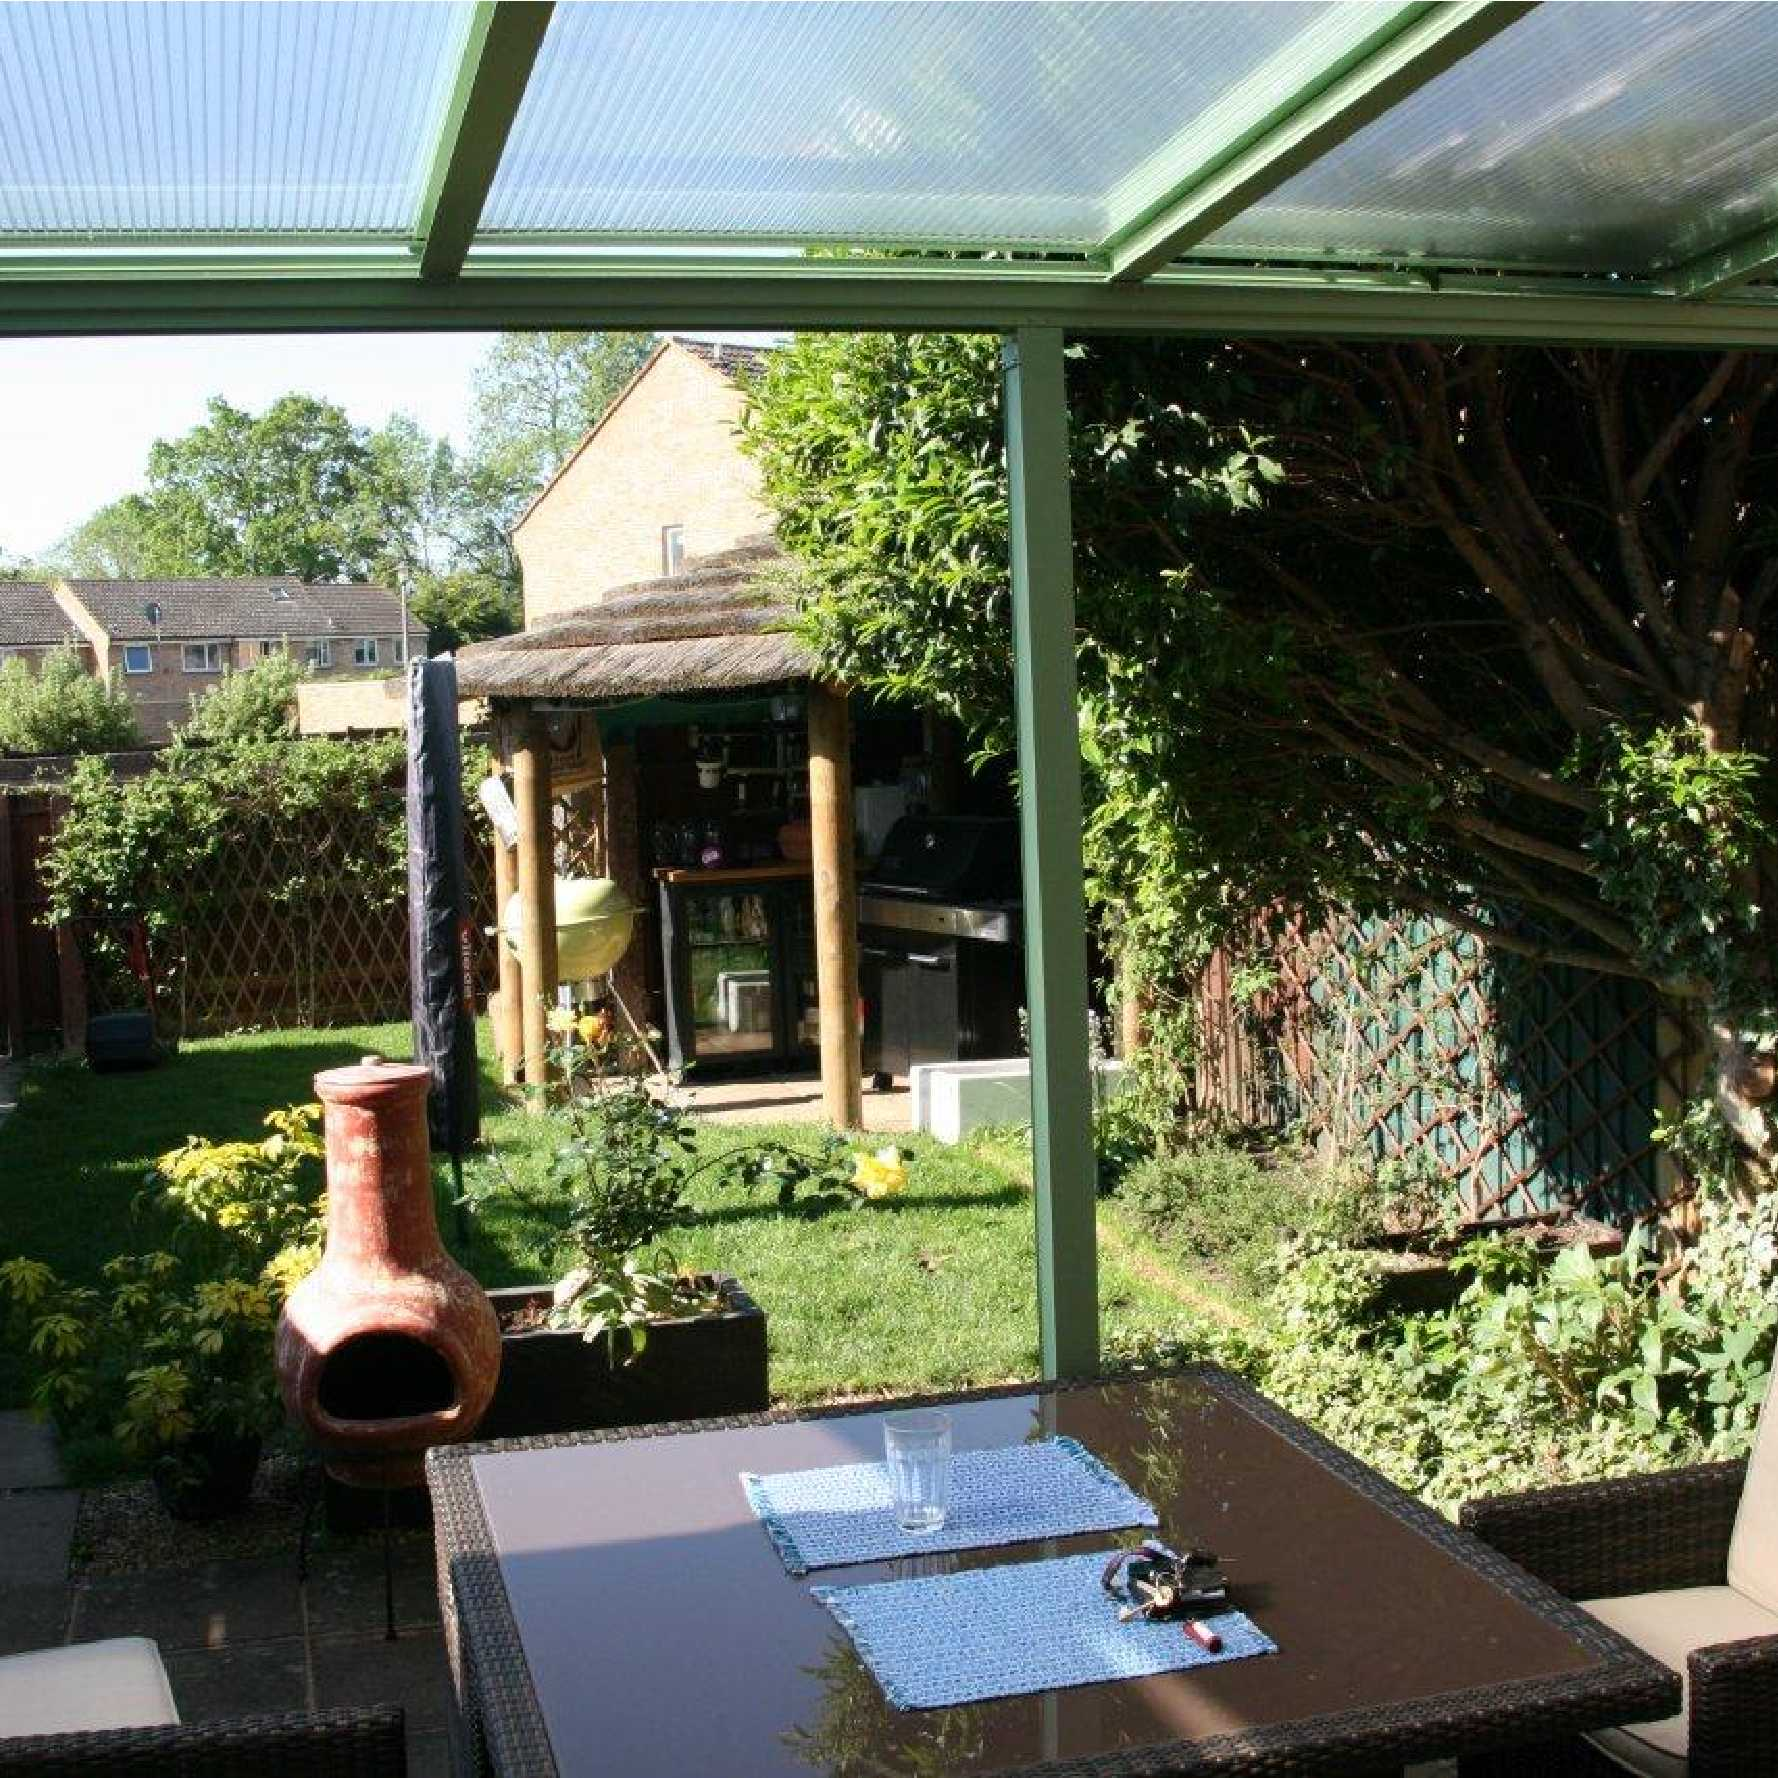 Affordable Omega Smart White Lean-To Canopy with 16mm Polycarbonate Glazing - 6.0m (W) x 3.5m (P), (3) Supporting Posts